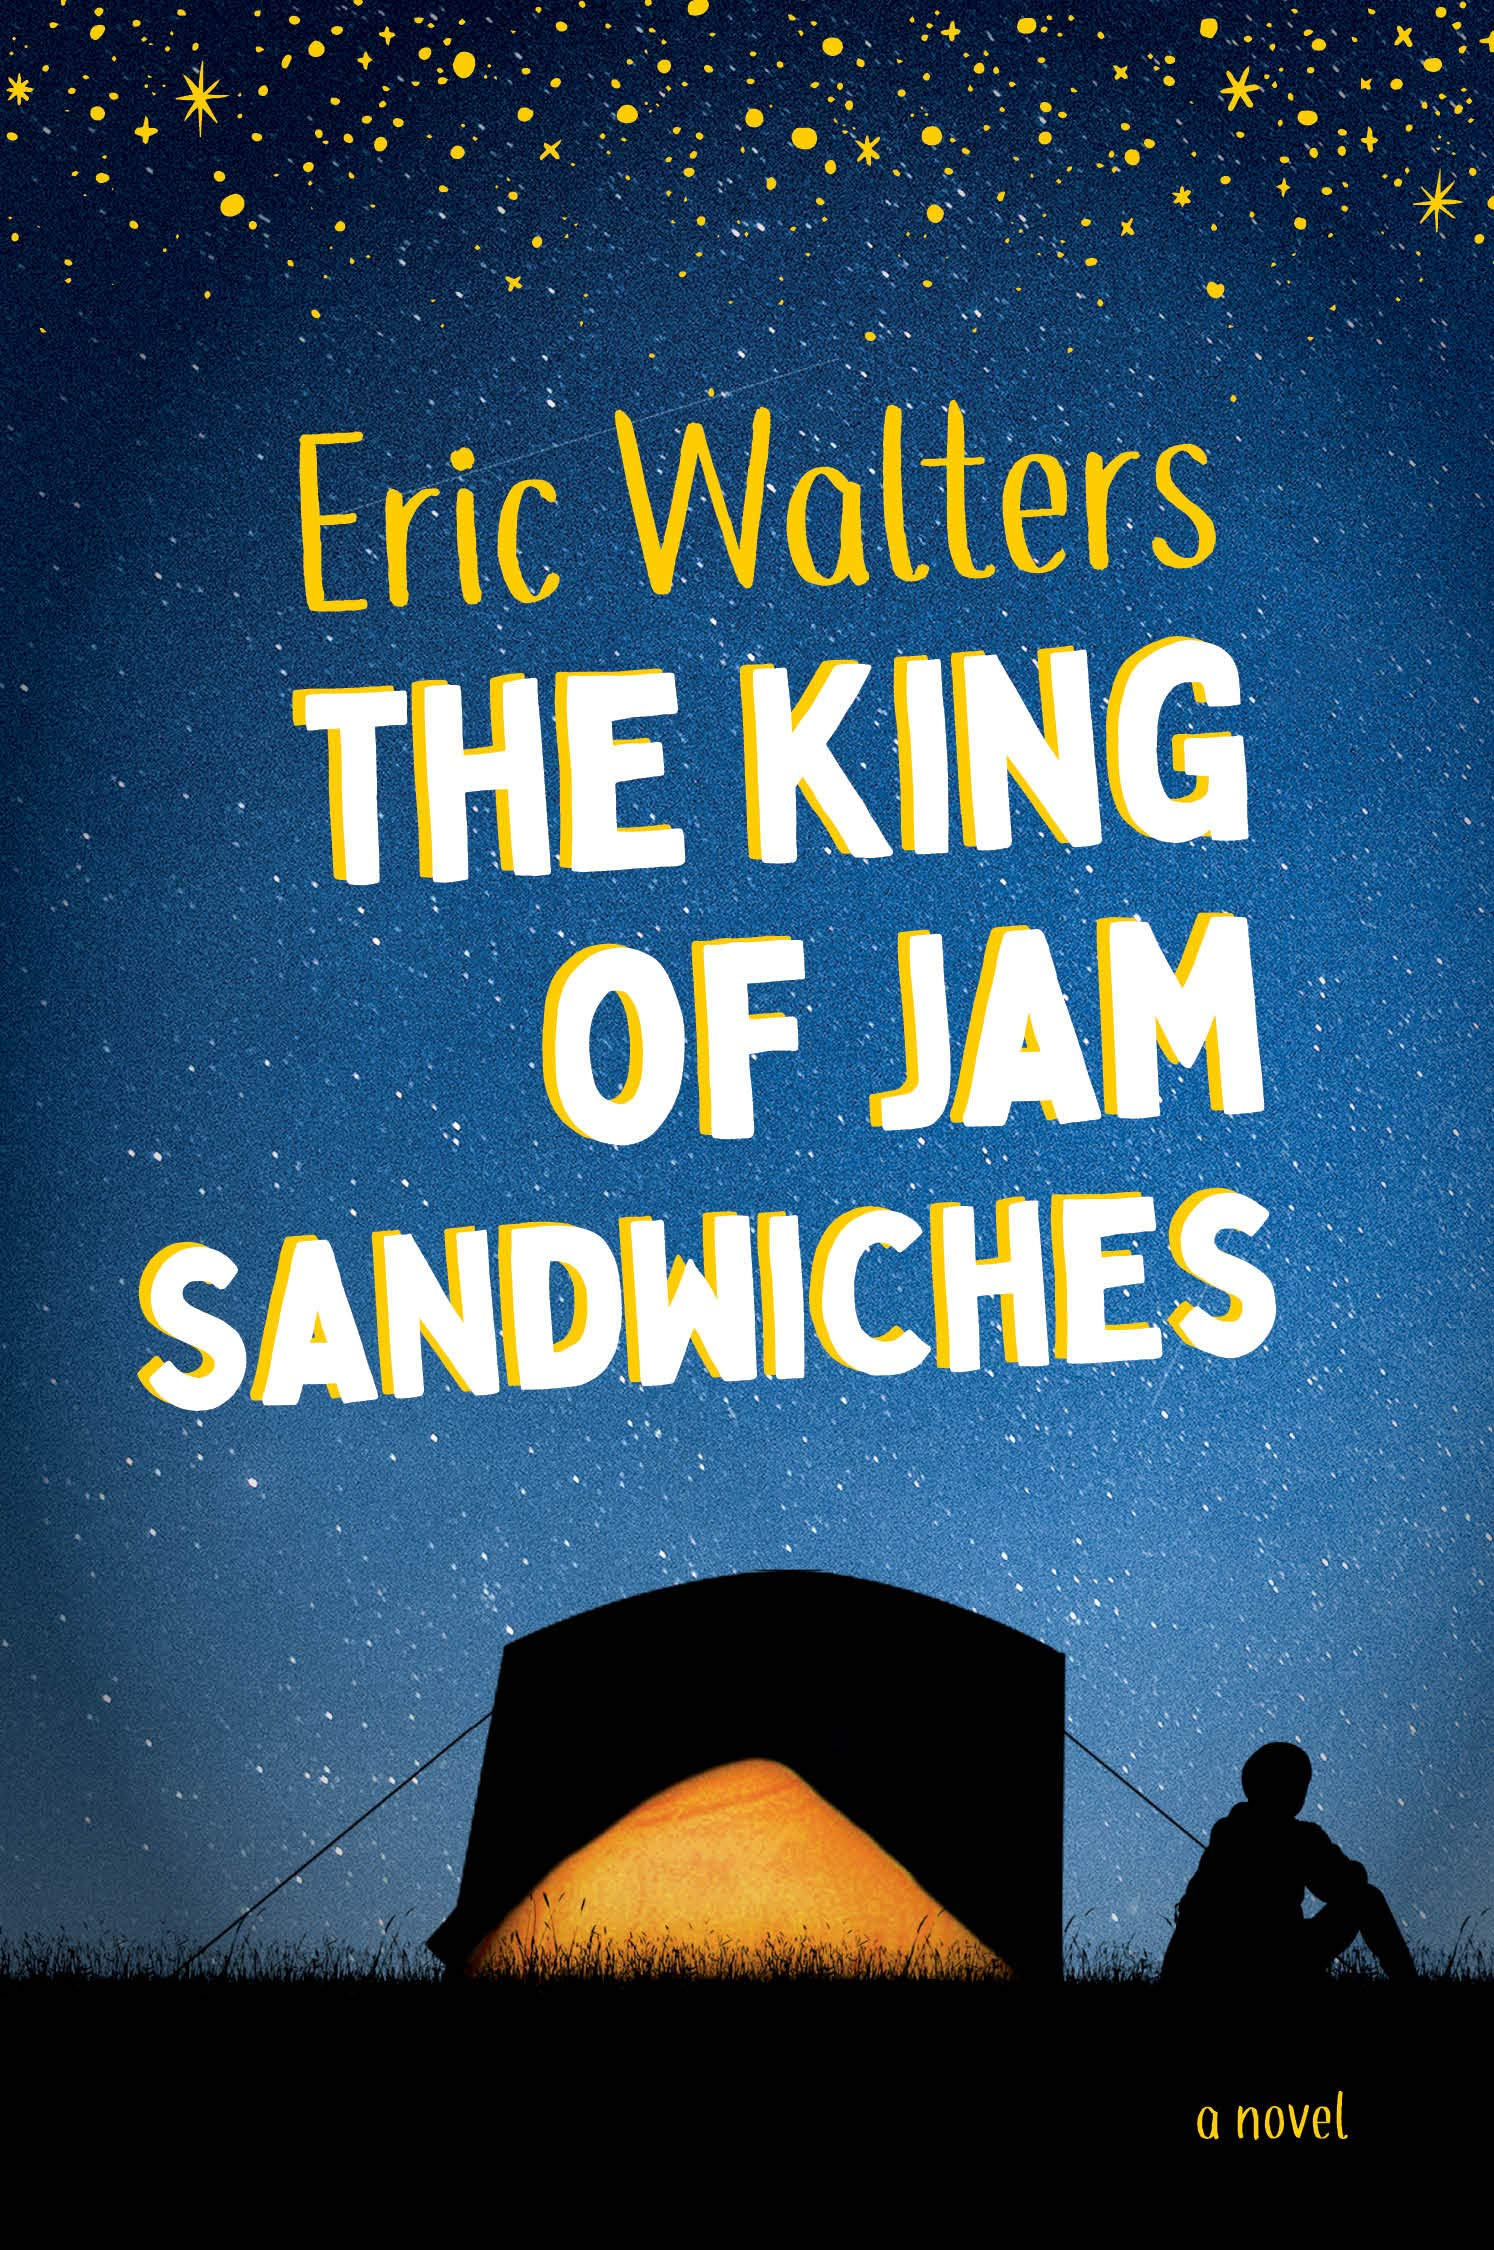 King of Jam Sandwiches, The: Walters, Eric: 9781459825567: Books - Amazon.ca